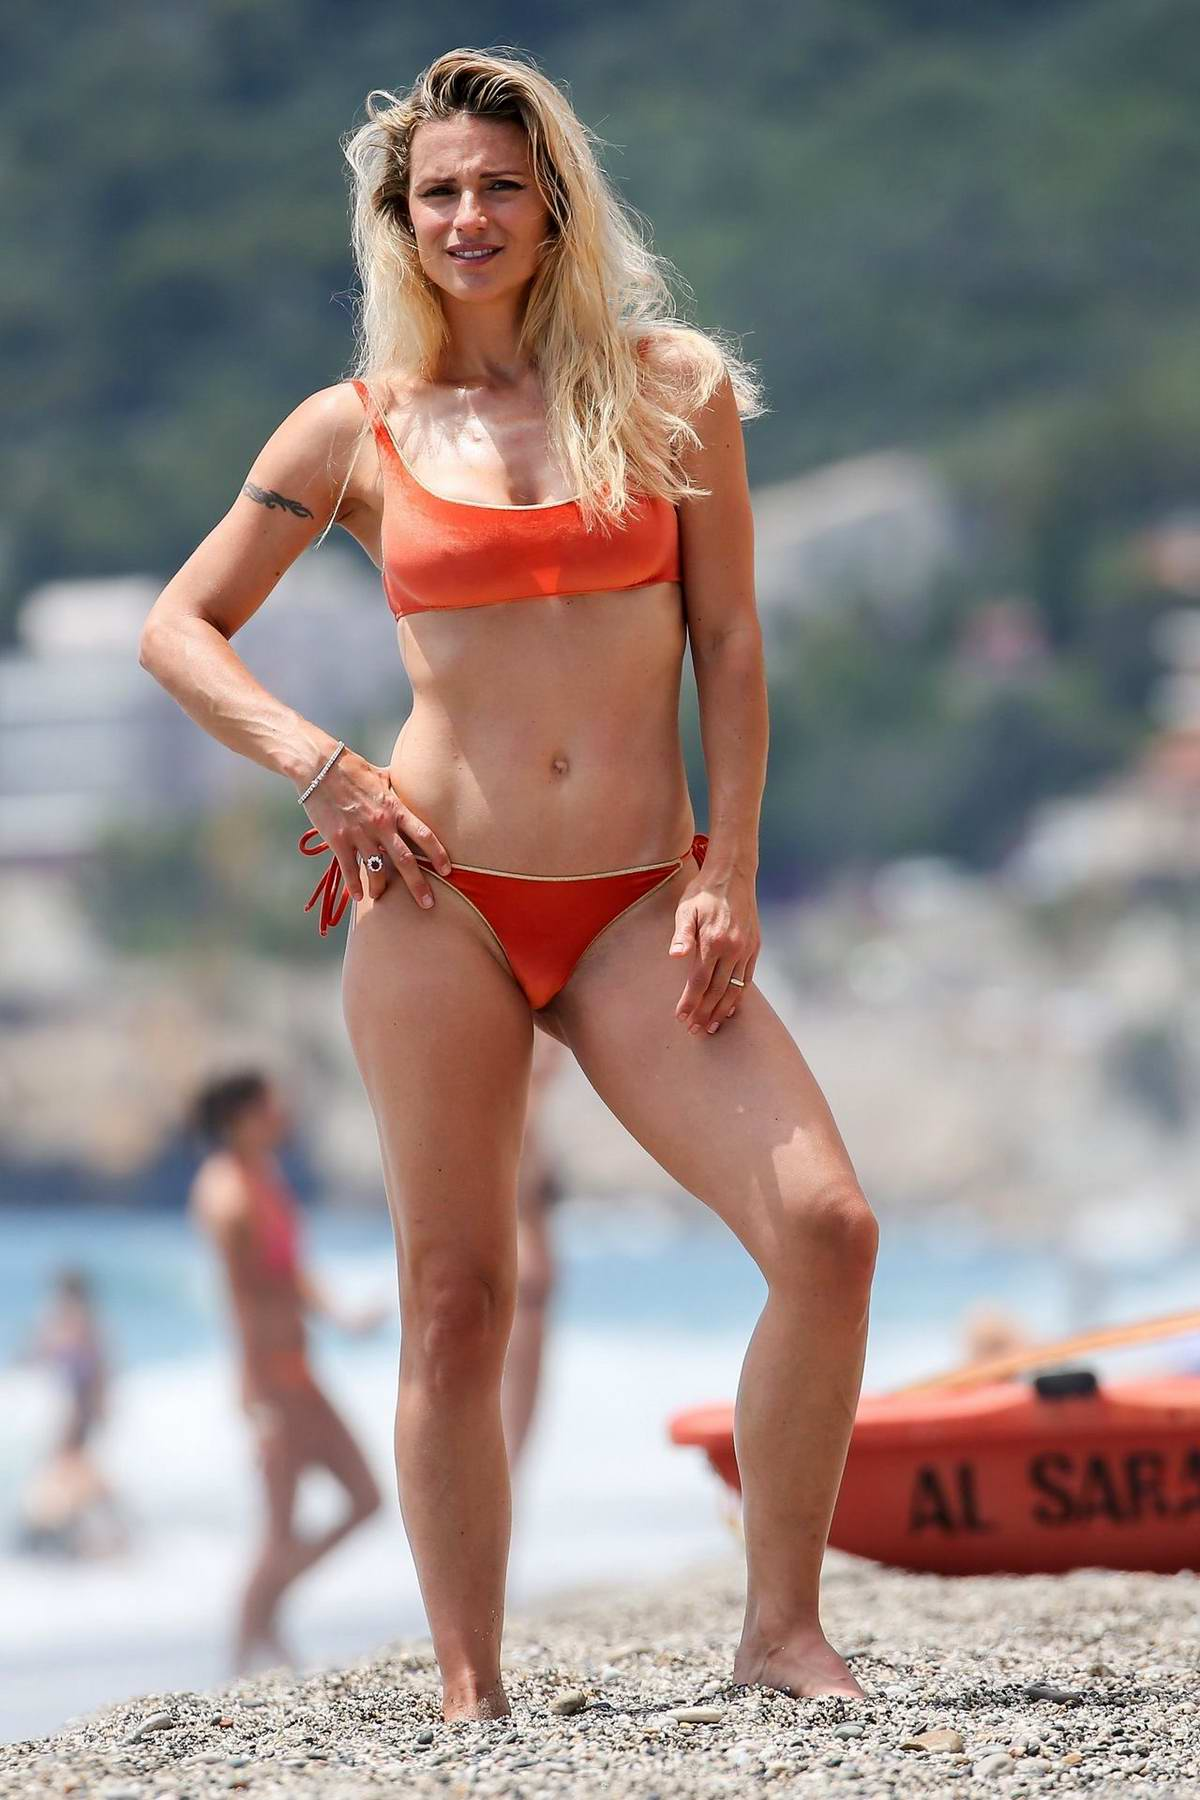 Michelle Hunziker wears a red bikini as she goes for a swim in Varigotti, Italy